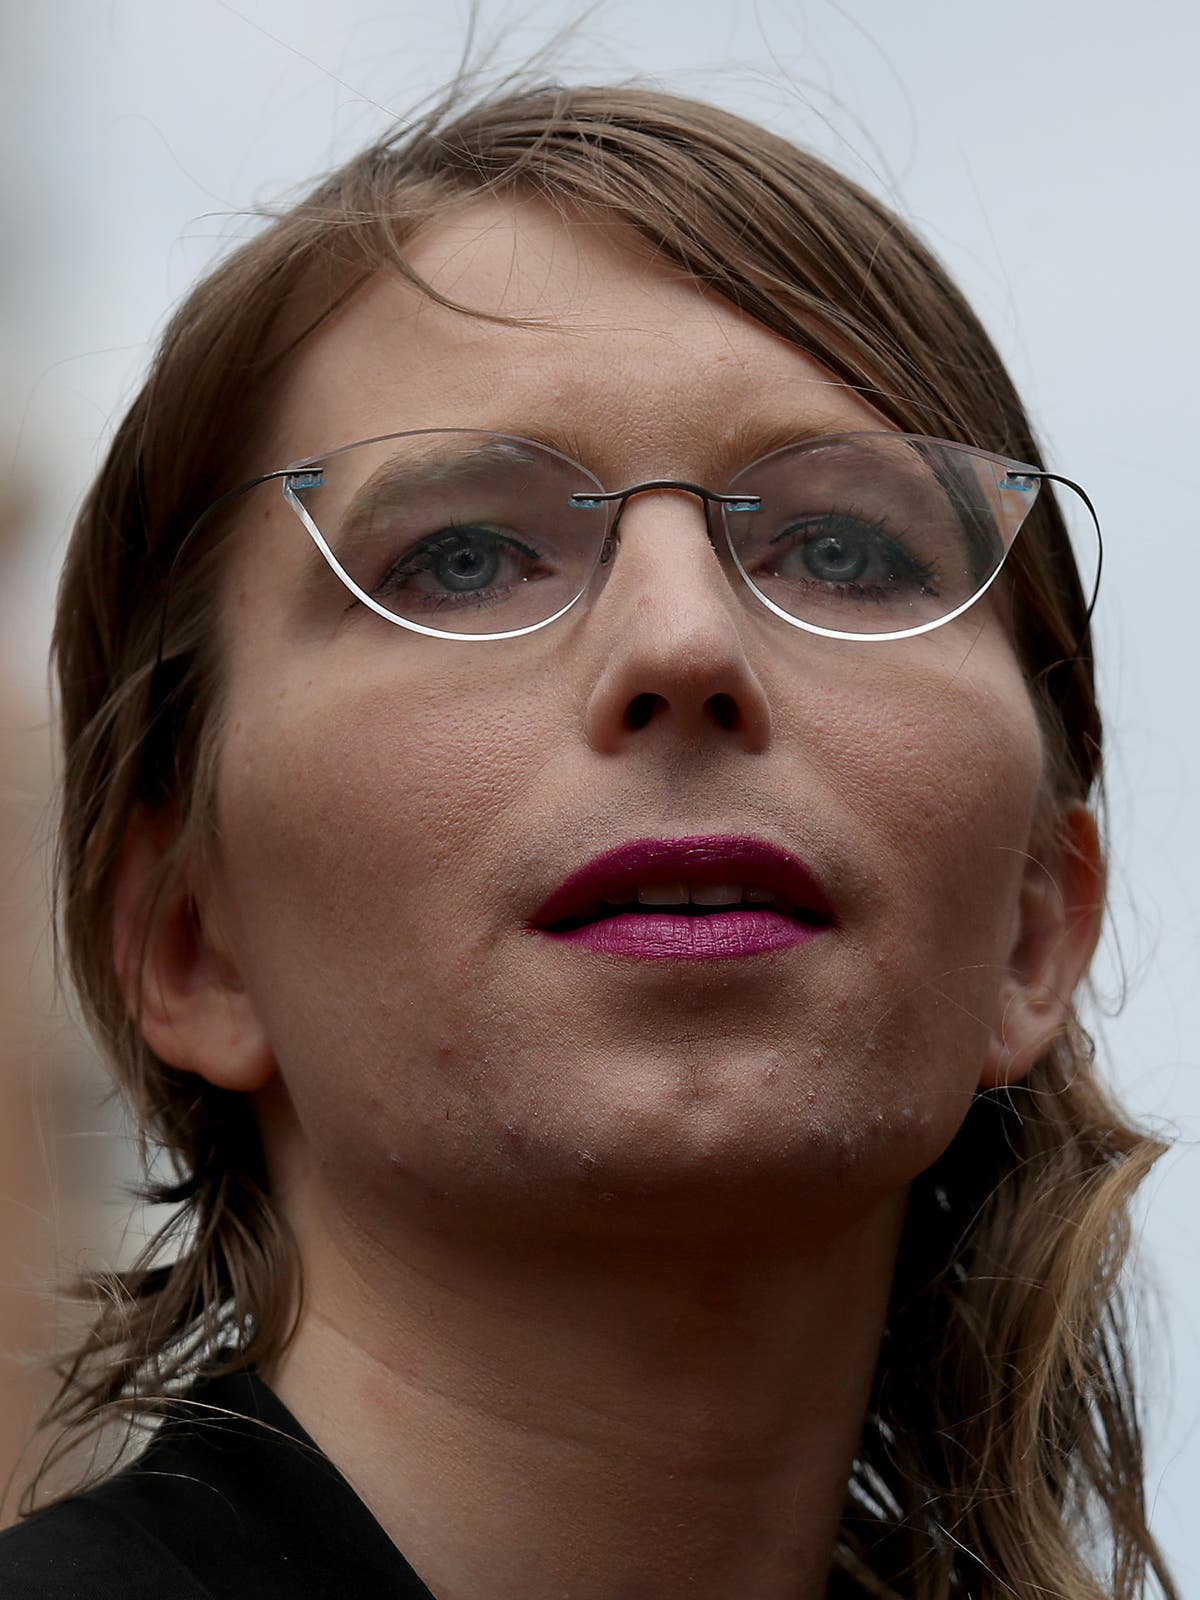 Chelsea Manning invited to Canada so they could throw her out